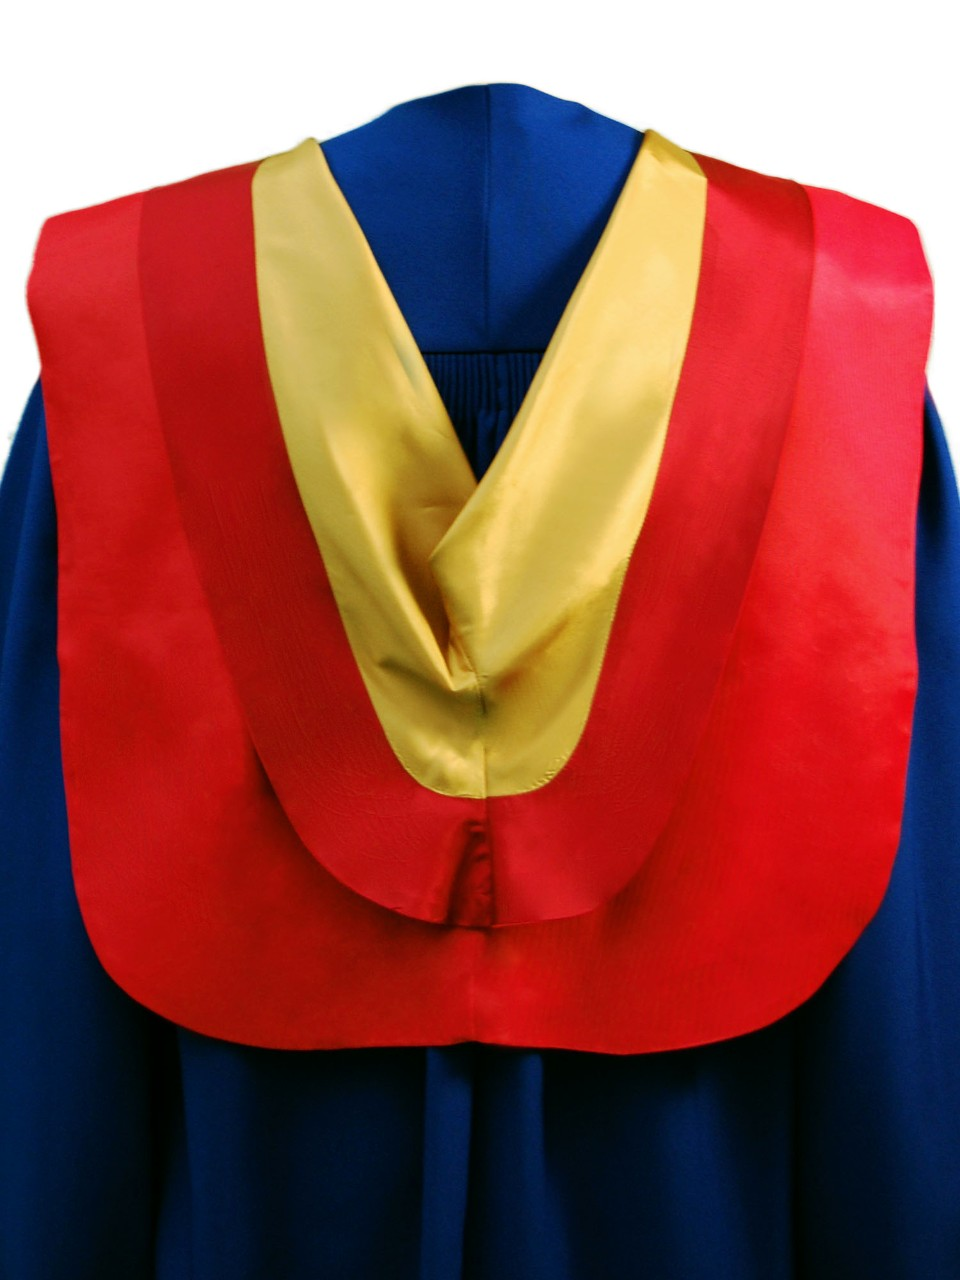 The Masters of Engineering hood is red with wide maroon border and gold underside.